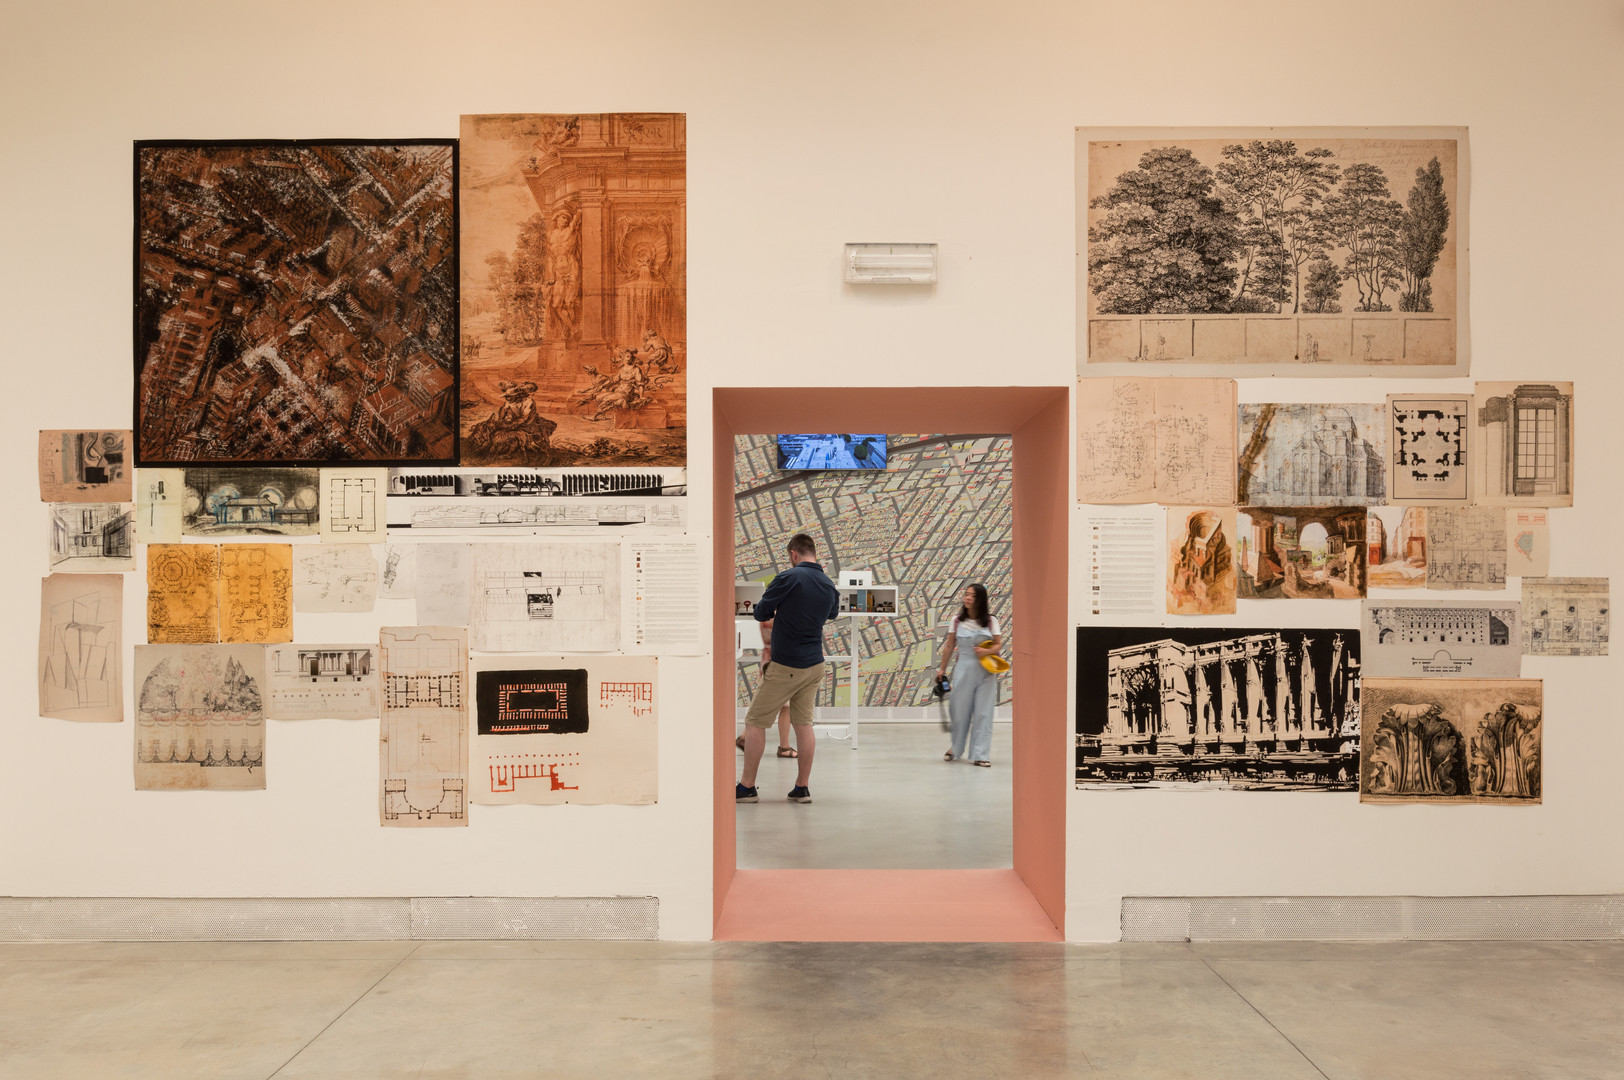 Architectural Drawings on a wall curated by Elizabeth Hatz Architects at the Venice Biennale 2018